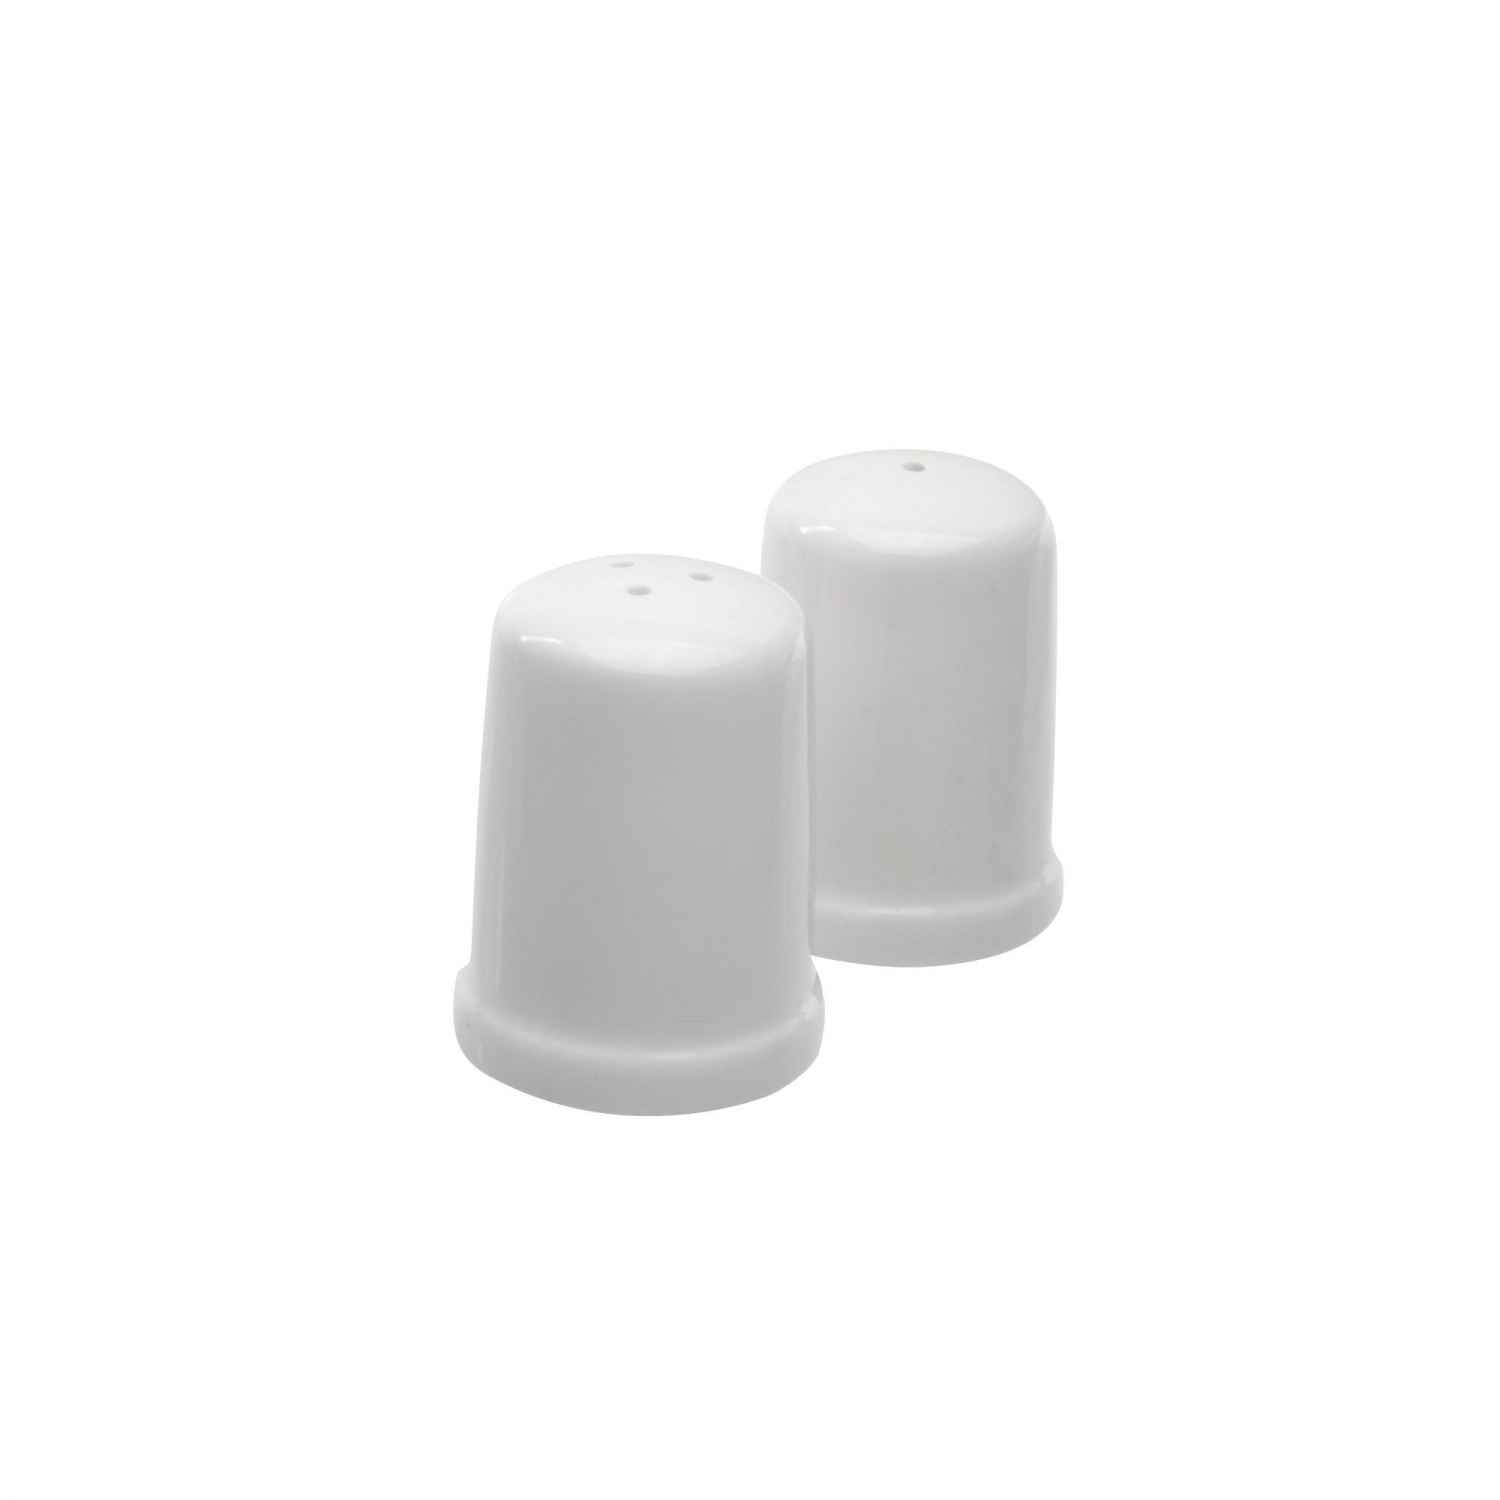 10 Strawberry Street WTR-30 Whittier Salt and Pepper Shaker Set